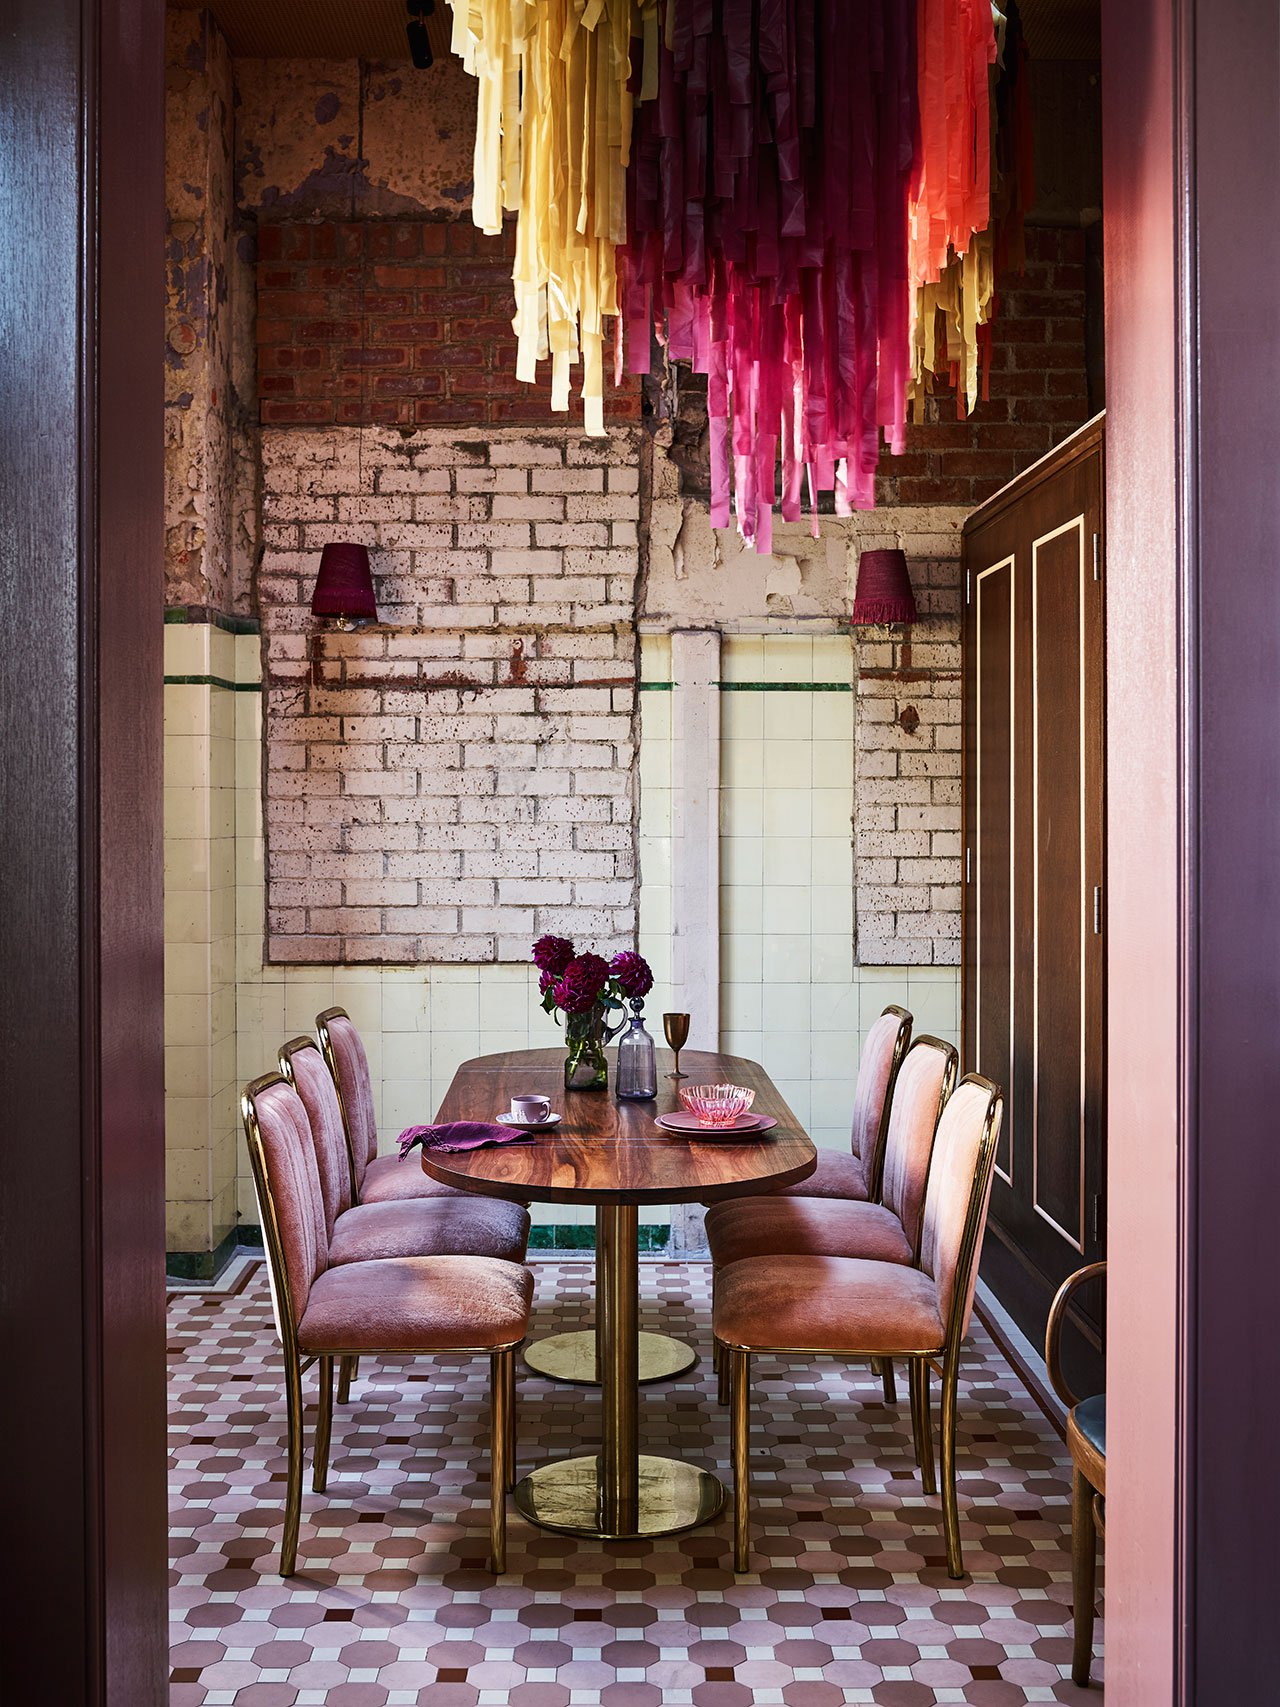 ROSE & IVY Journal Inspired Design | A Sydney Hotel Decorated in Muted Jewel Tones